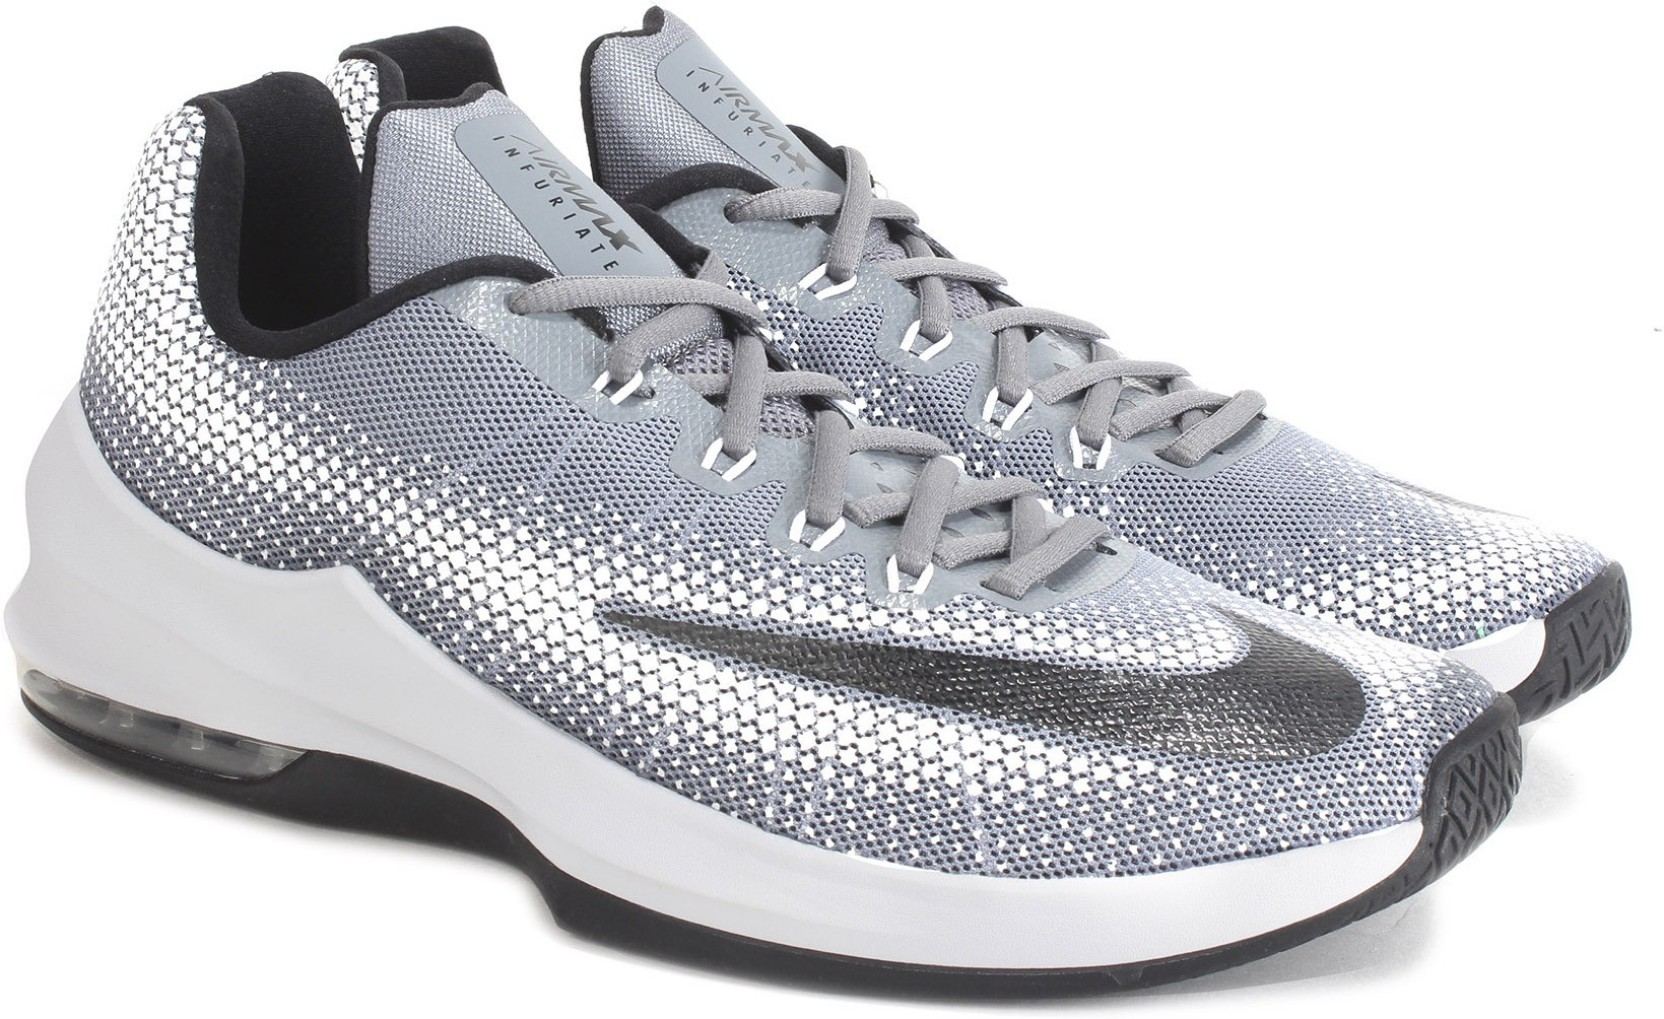 Nike AIR MAX INFURIATE LOW Basketball Shoes For Men - Buy COOL GREY ... f5602b020